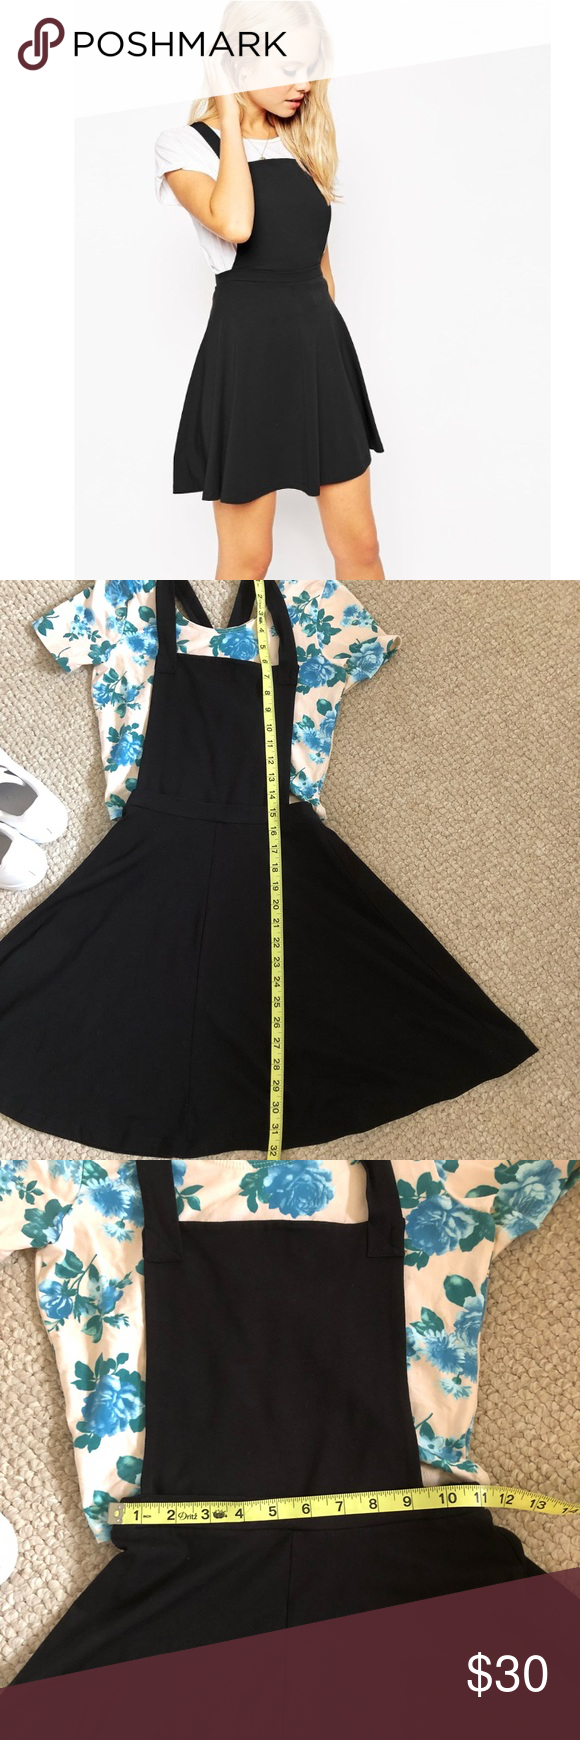 fa075d413aa Asos black pinafore dress Jersey feel pinafore dress in black. Has nice  straps that cross in the back. The skirt flares out. Perfect to layer under  a crop ...